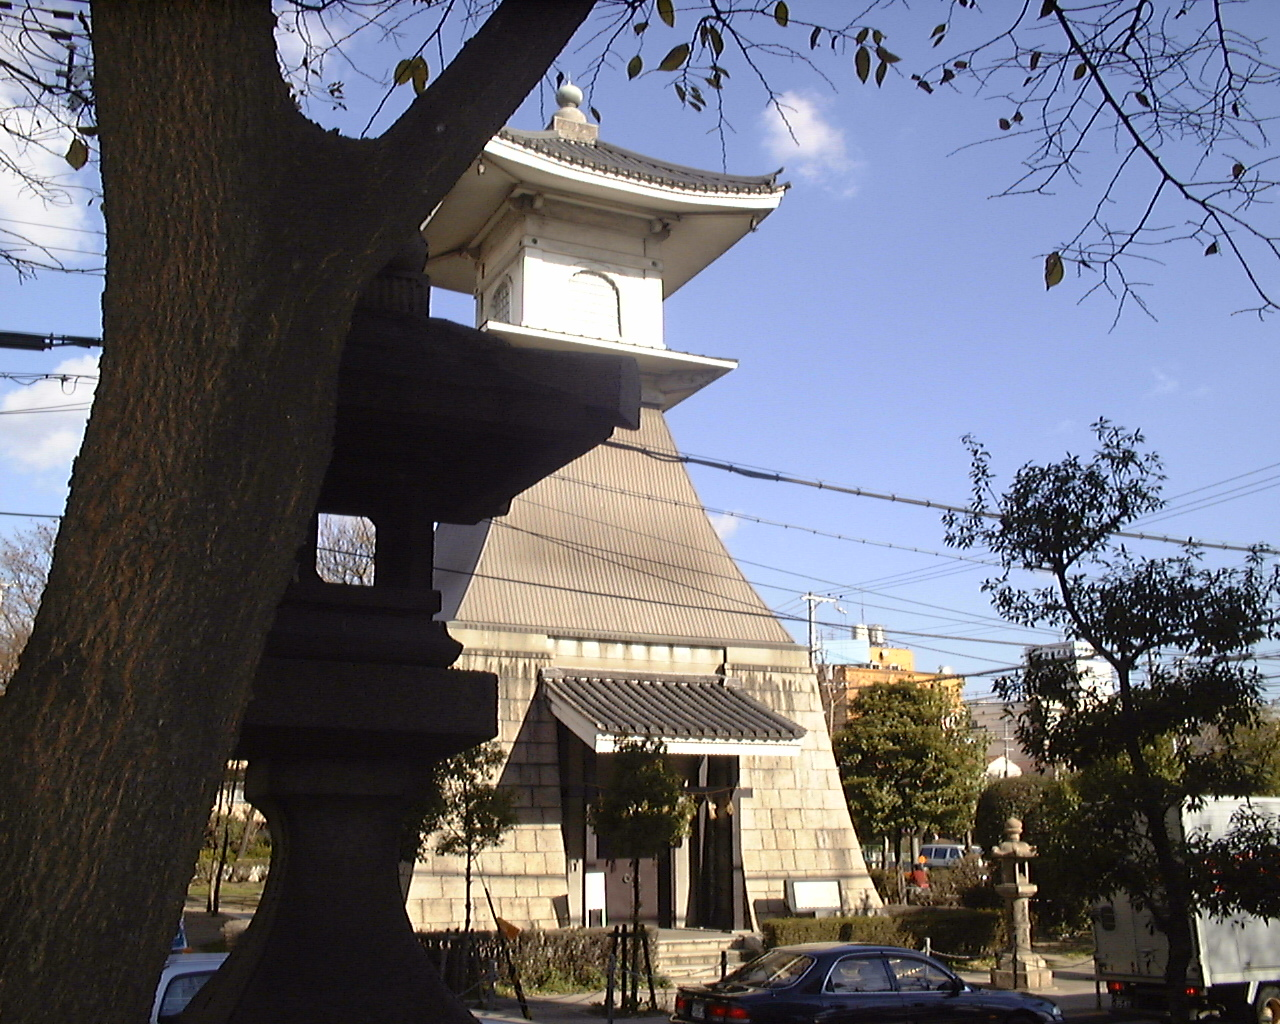 kakinomoto no hitomaro from hyakunin isshu nowheretostay s oldest lighthouse in sumiyoshi park osaka photo ad blankestijn